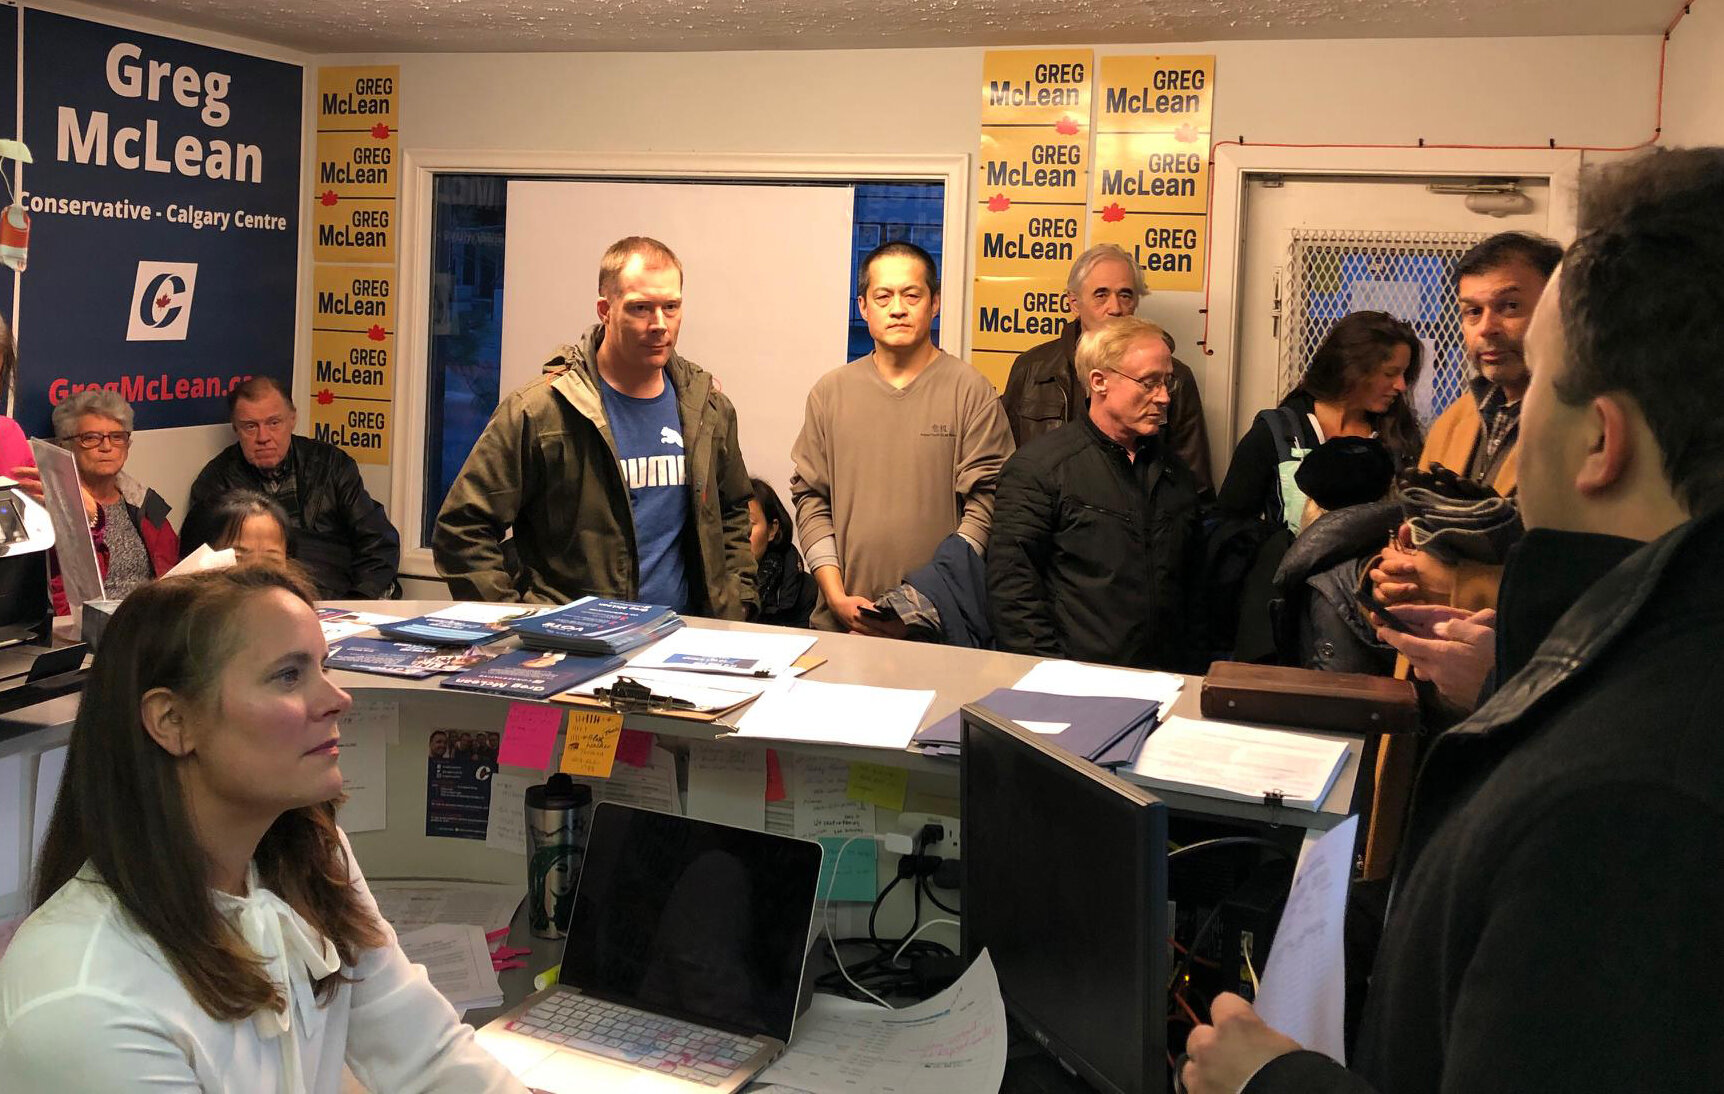 It was a packed house Thursday evening as volunteers came in for training on Election Day tasks. We still have a few jobs open for E-Day volunteers (scrutineers, doorknockers) - if interested, please sign up here to pick your job, location and shift:  https://volunteersignup.org/HJKQA